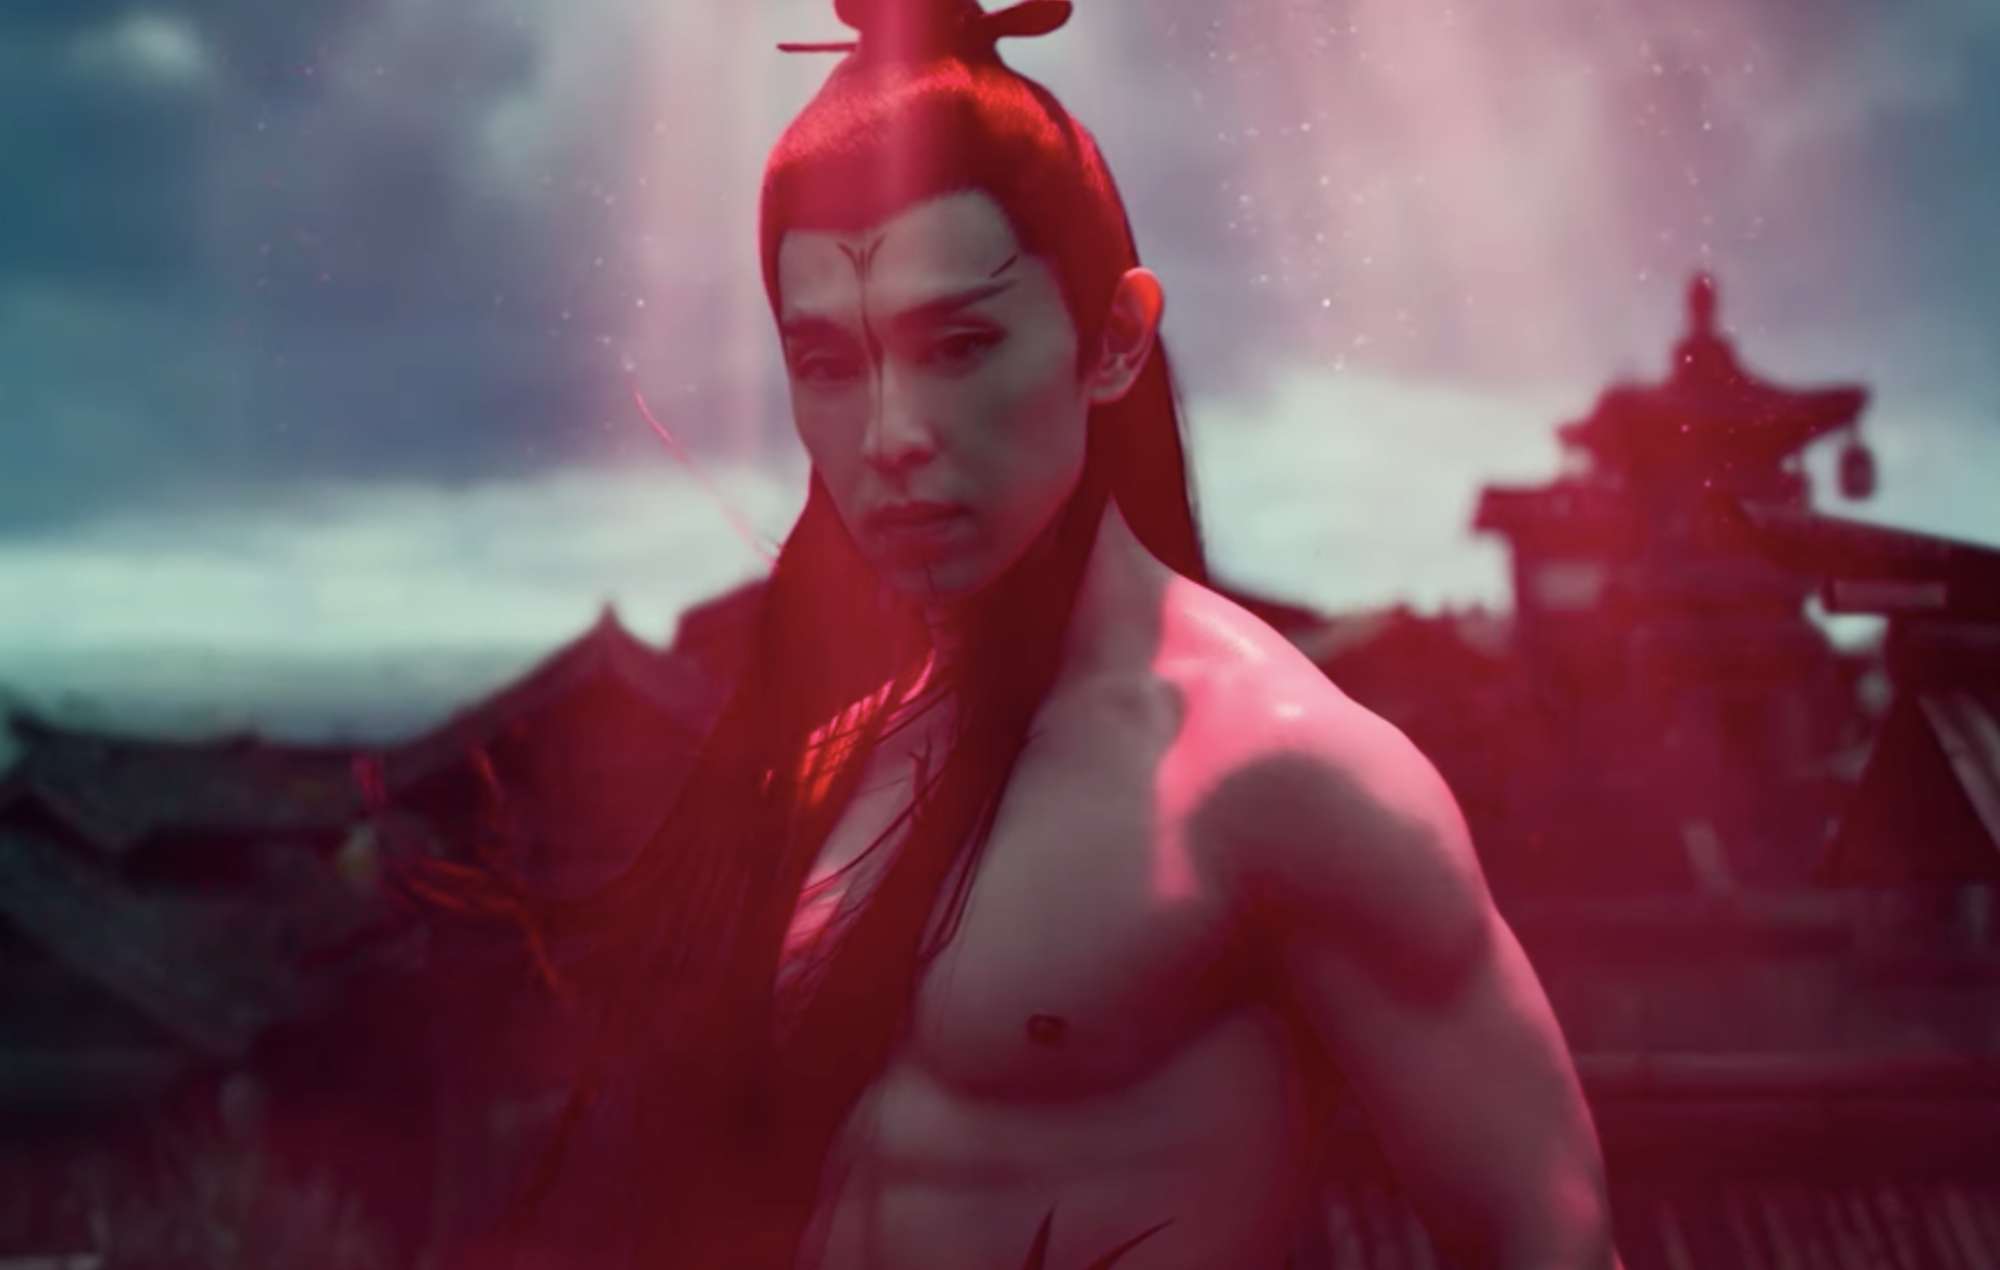 The Chinese martial arts The Yin Yang Master full movie is now available to watch online on Netflix streaming service, premiered on the date Friday, M